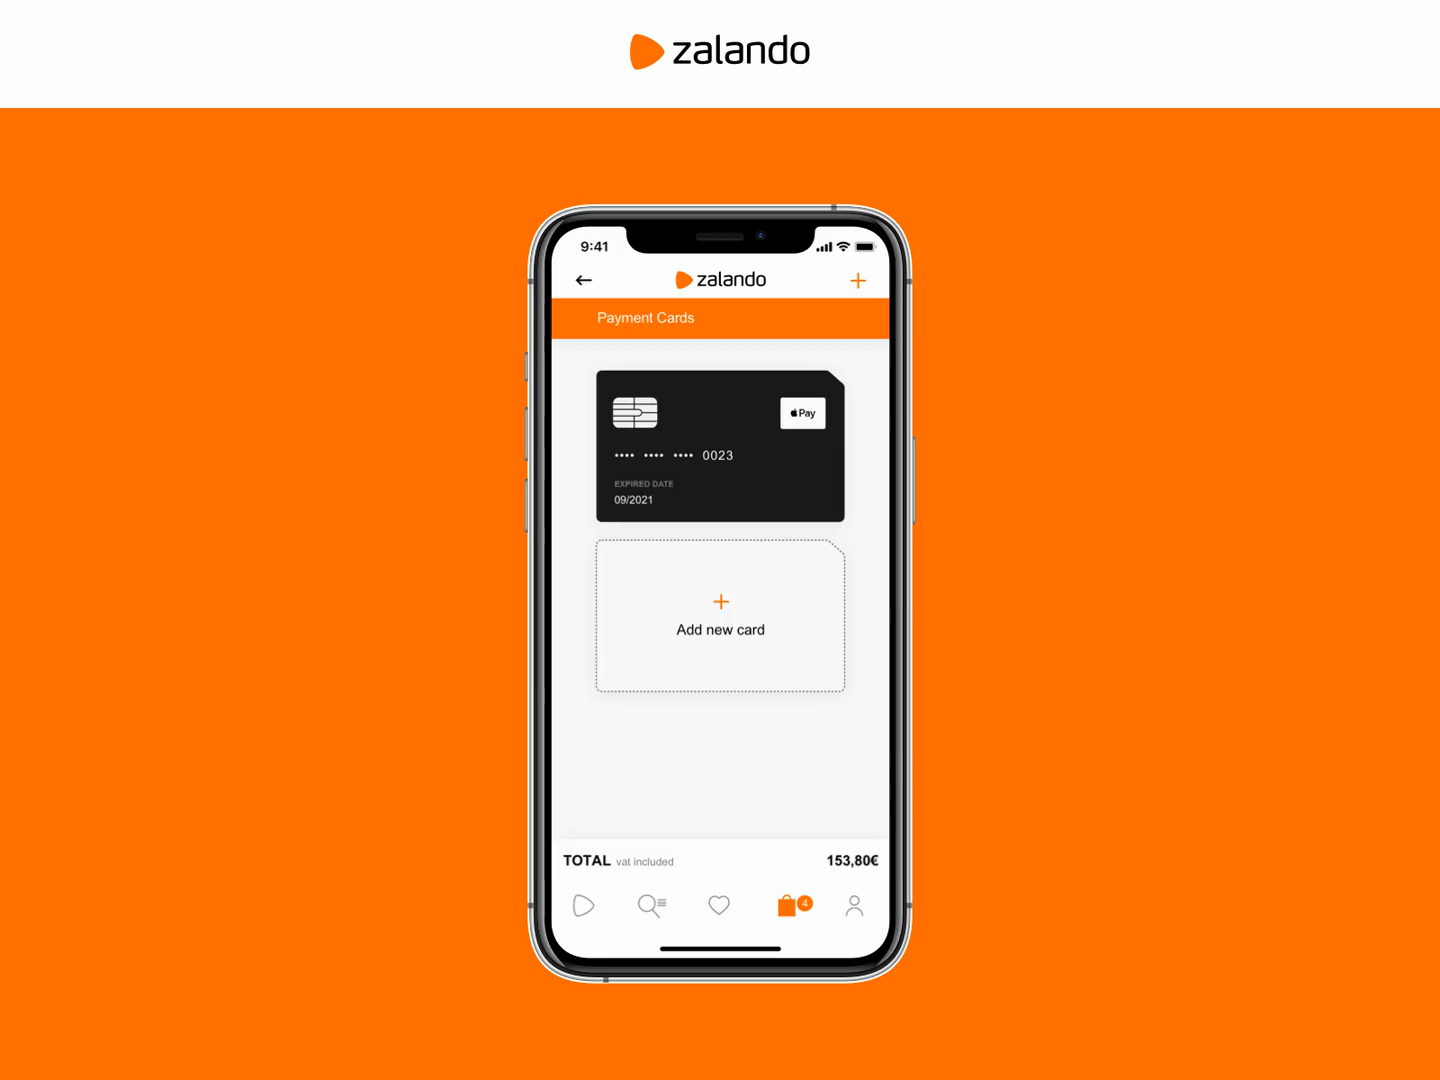 Dailyui 02 Zalando Payment App Mobile By Gianluca Delgado Pires On Dribbble